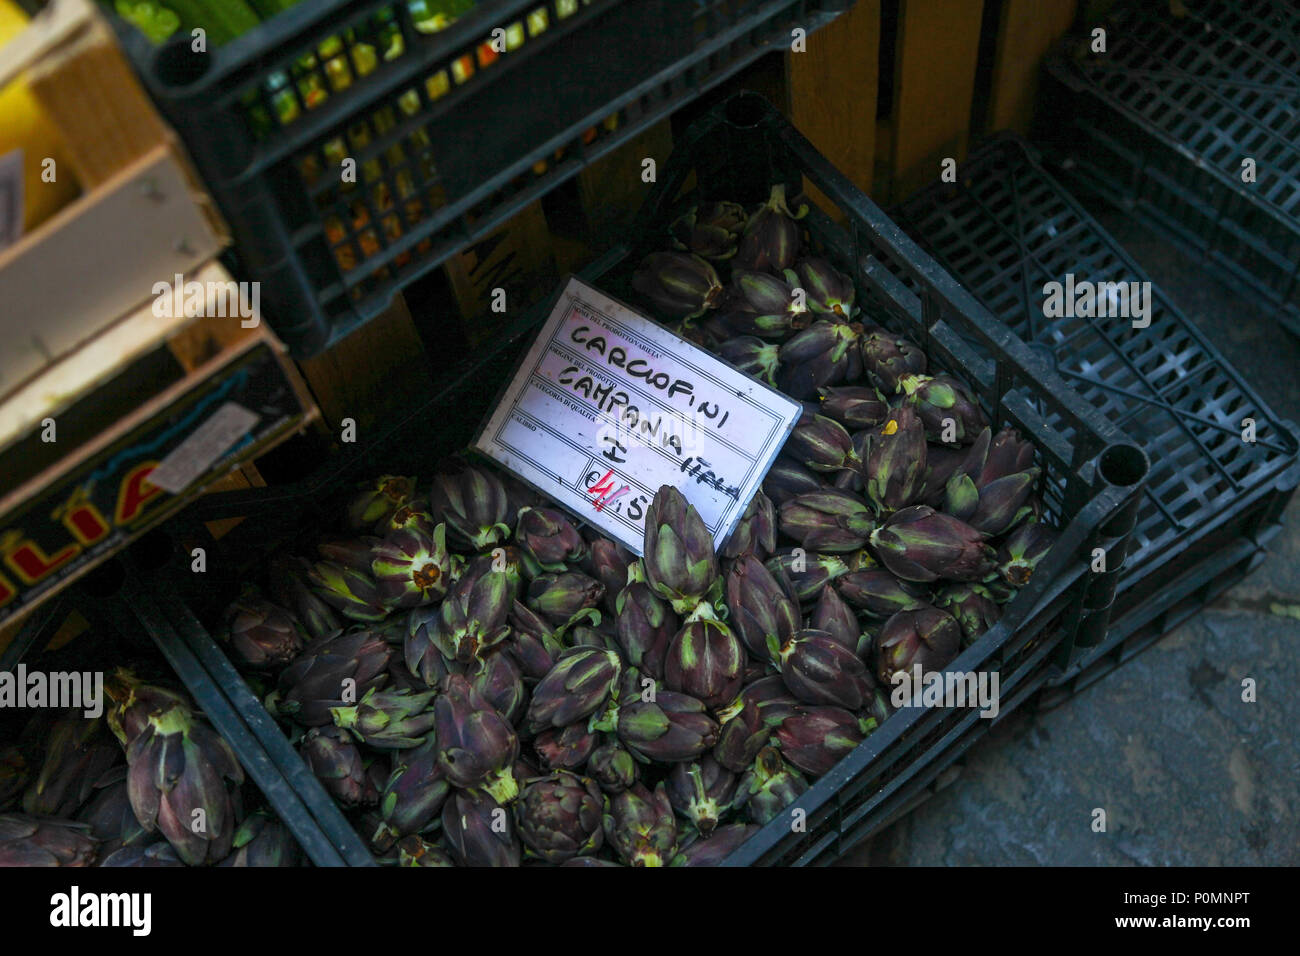 Fiesole artichokes for sale in a Sorrento market, which are a special baby artichoke variety with a rich purple colour - Stock Image